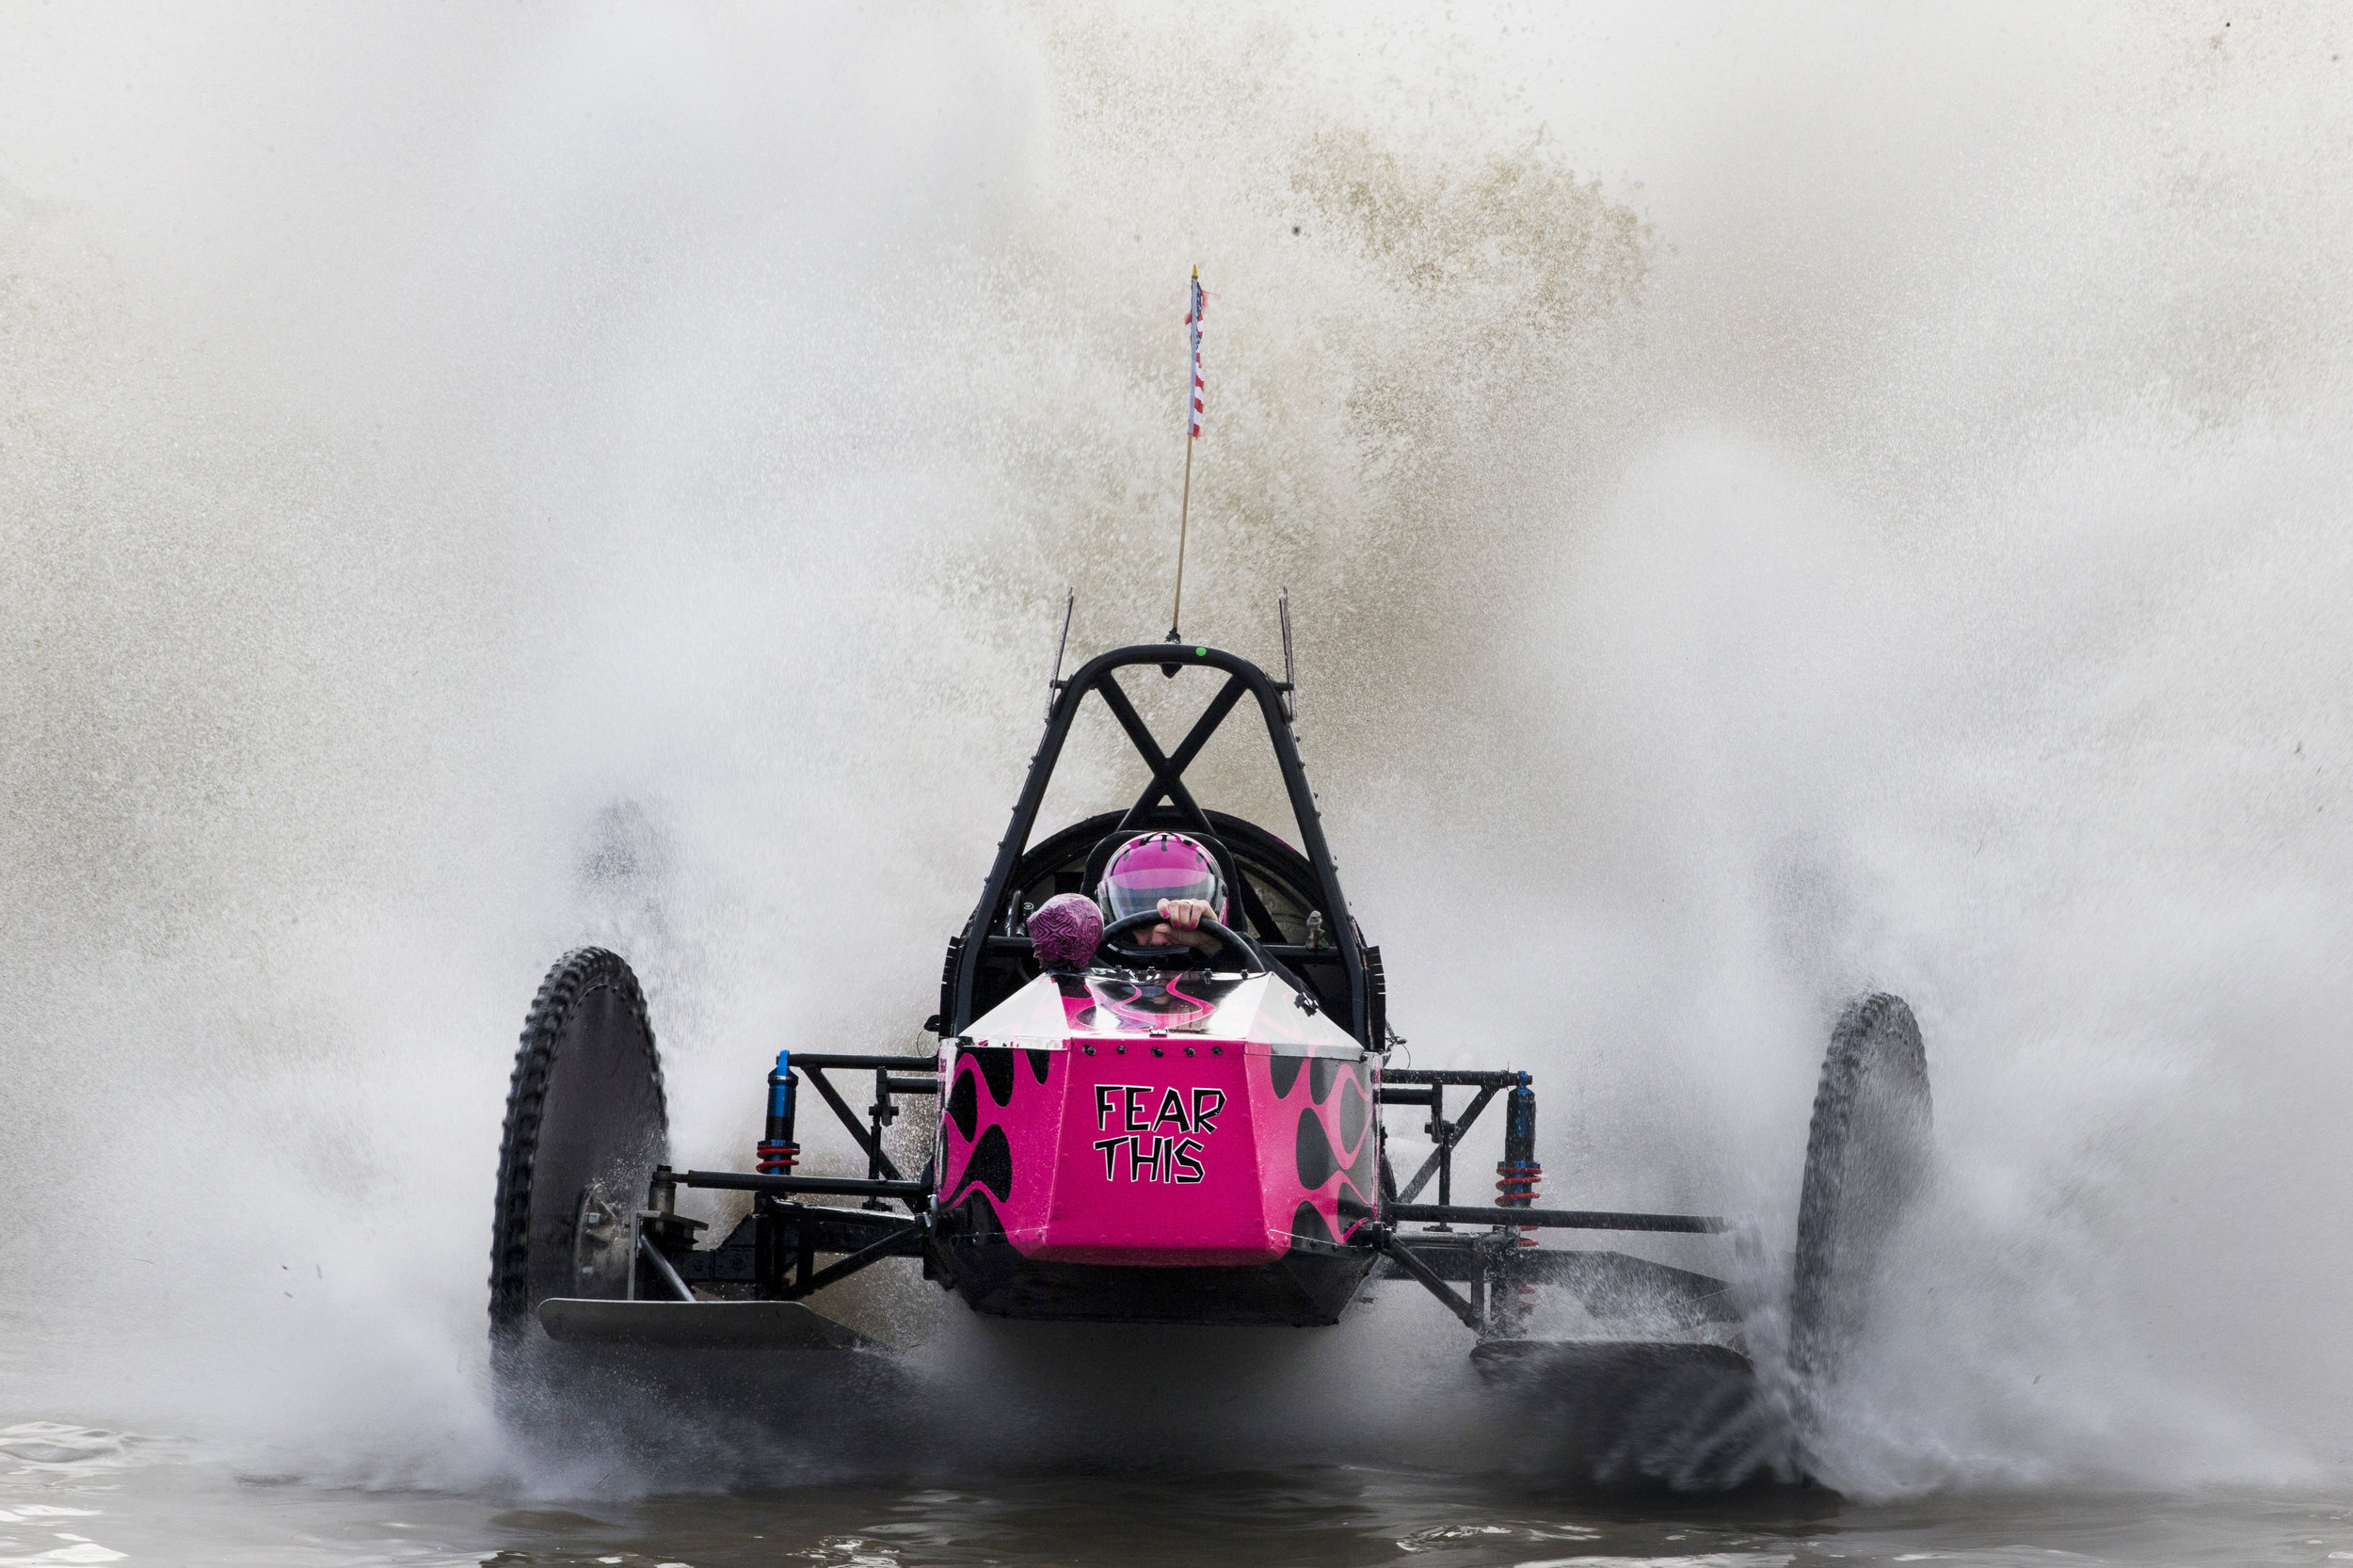 "Fatal Attraction driver Bonnie Walsh, 57, crosses the finish line to win the Big Feature in 54.35 seconds during the Budweiser Winter Classic swamp buggy races at Florida Sports Park in Naples, Florida on Sunday, Jan. 29, 2017. This weekend was her first time racing since her husband and fellow swamp buggy driver, Terry ""T-Bone"" Walsh, died in March 2016."